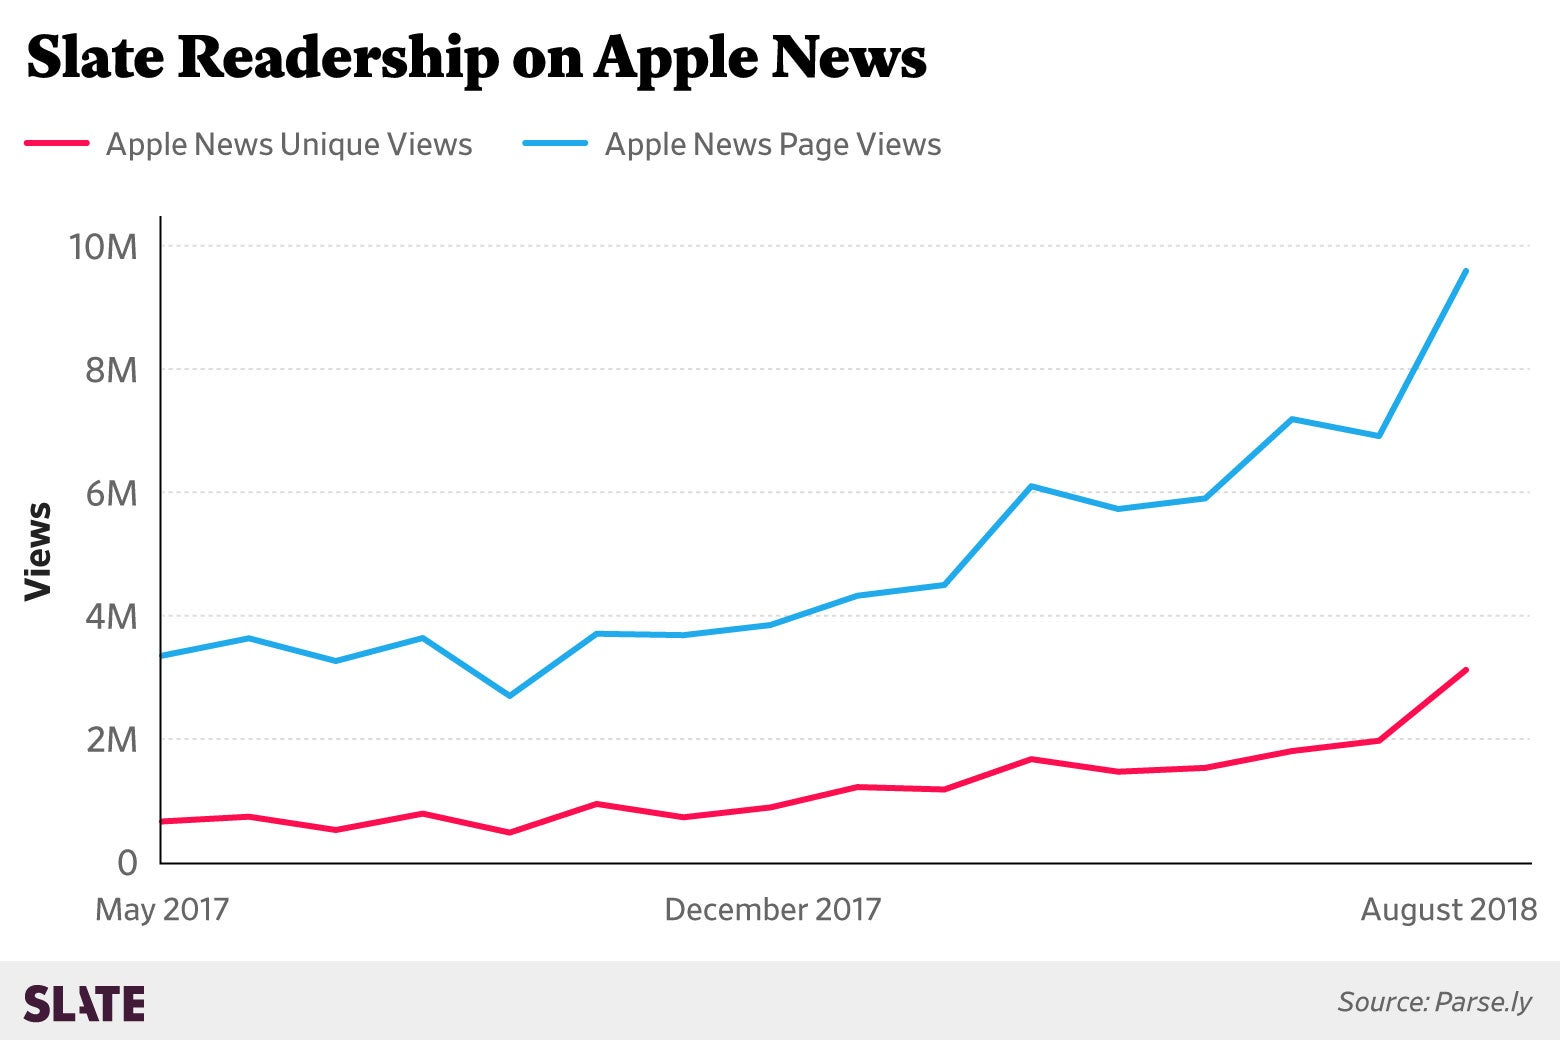 Slate Readership on Apple News graph